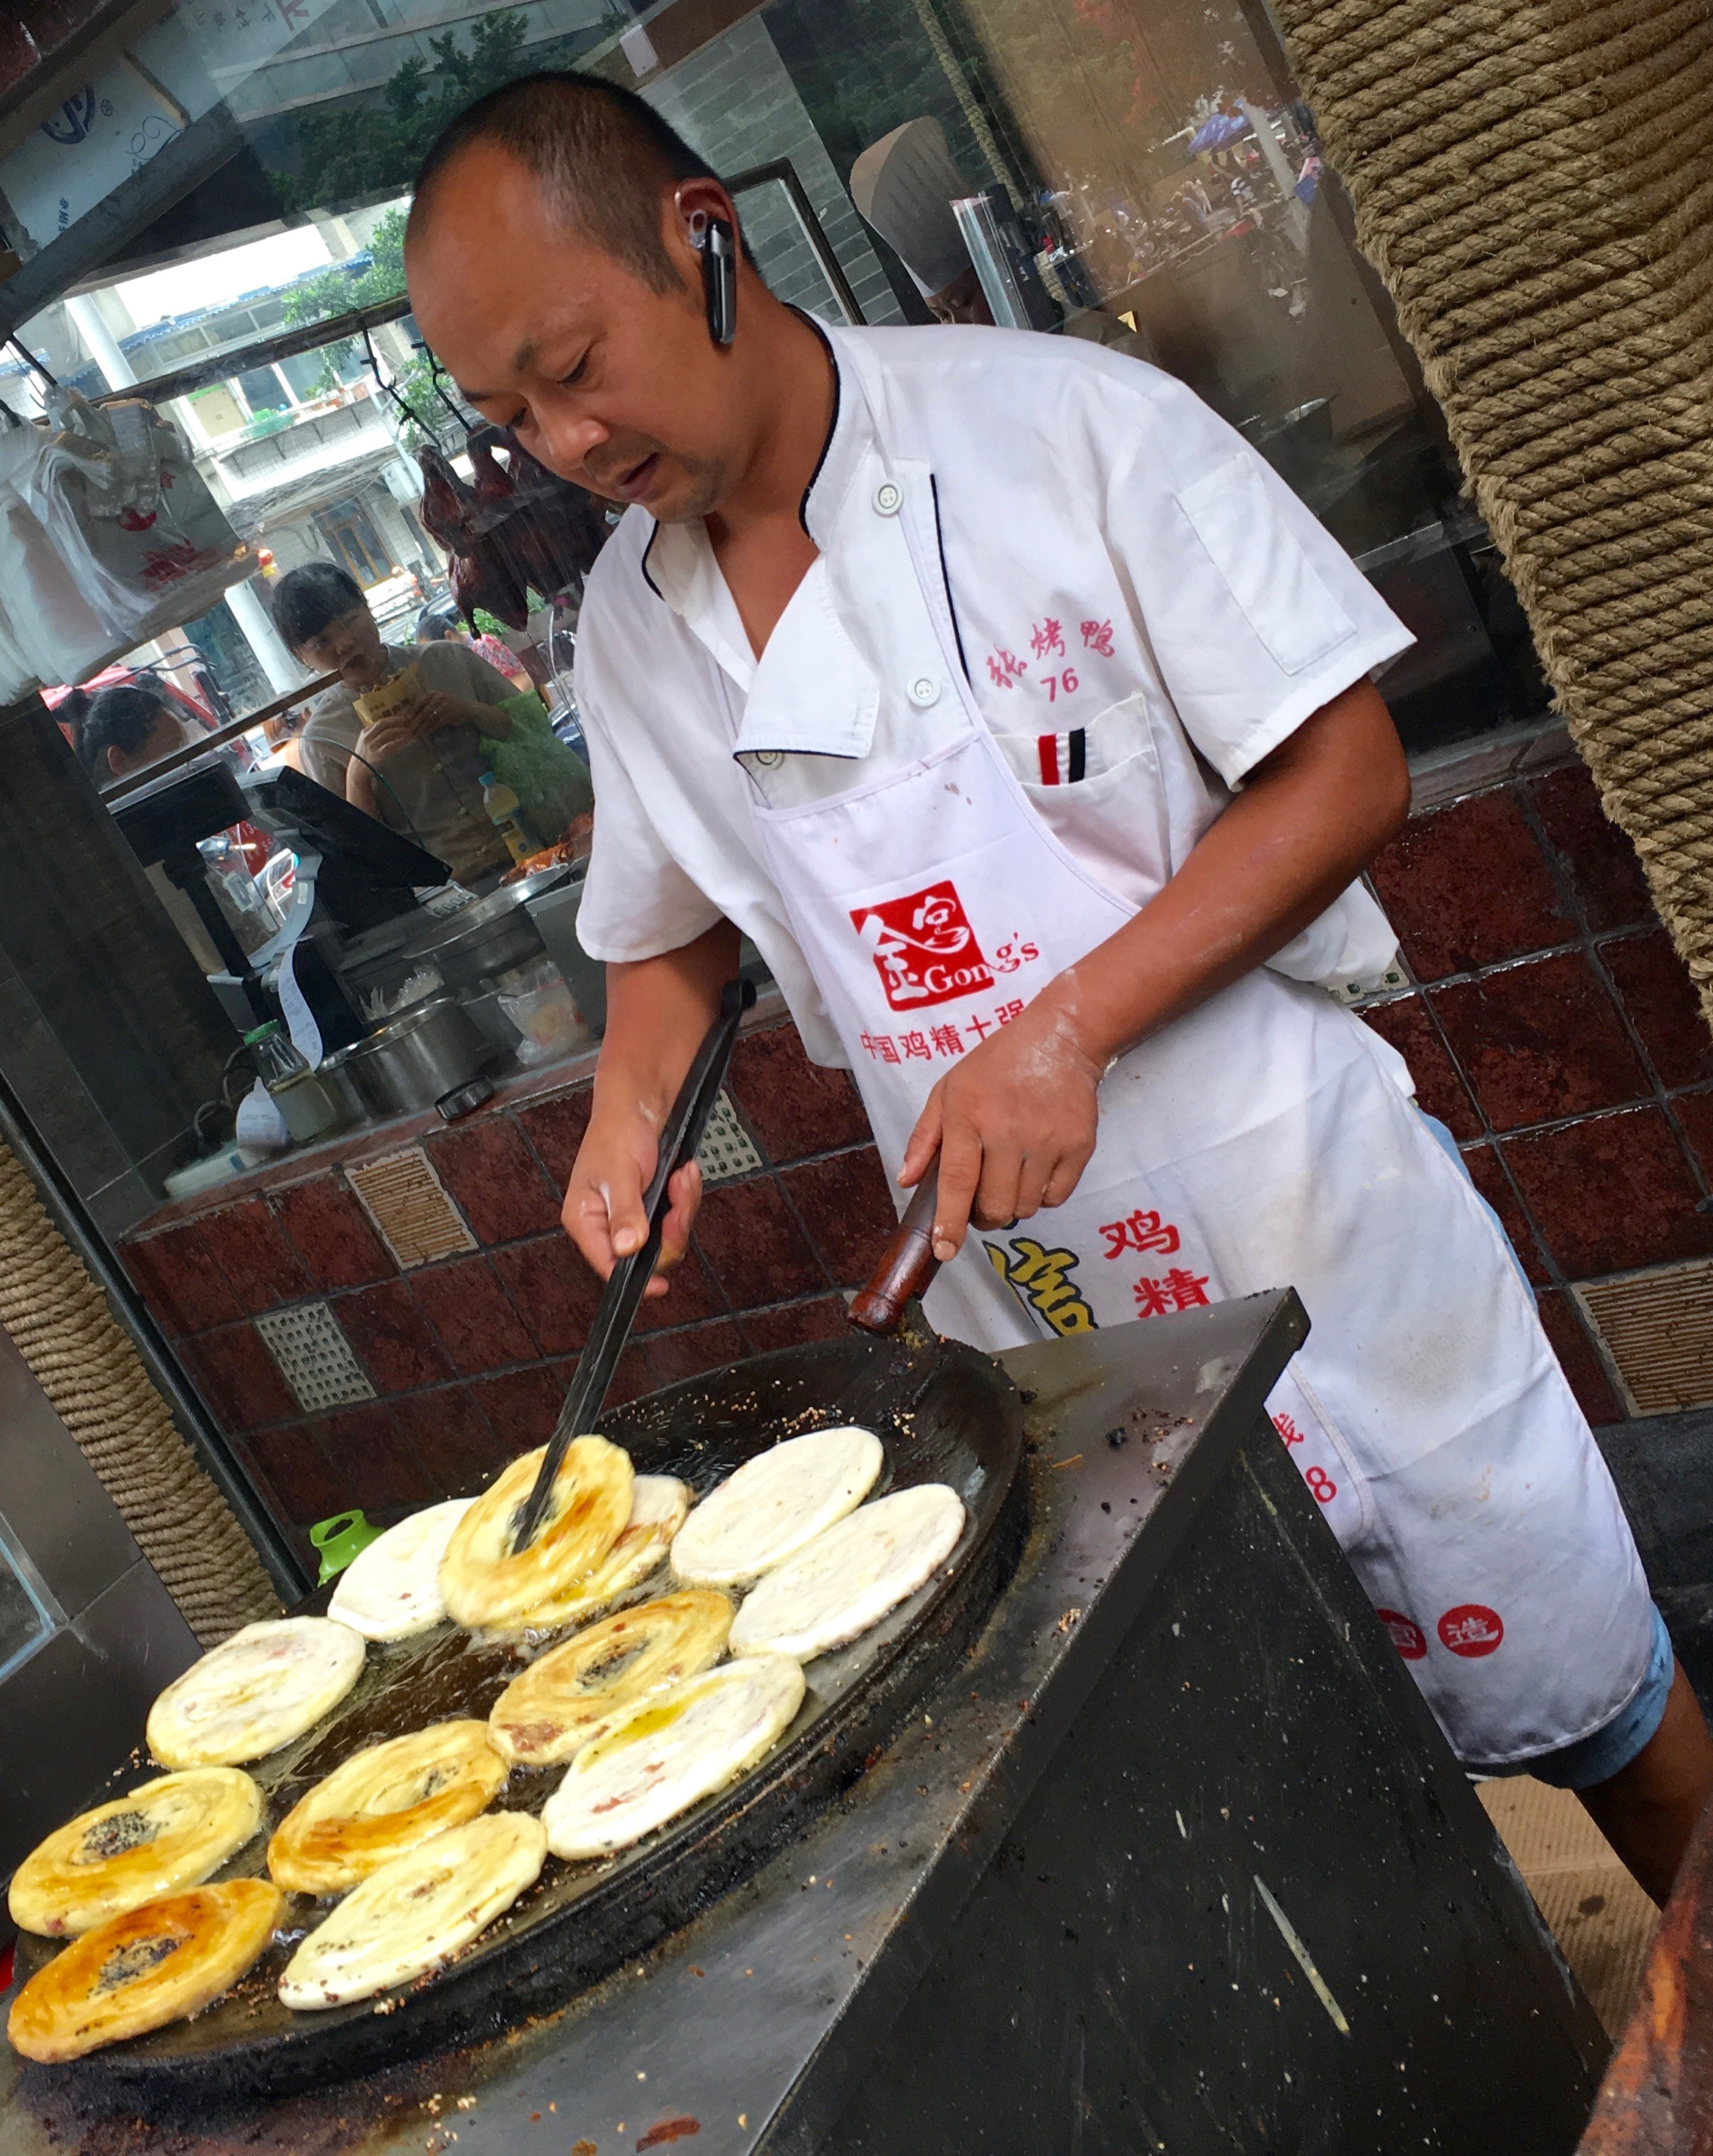 Here's the cook, bringing them to a sizzle along the sidewalk.